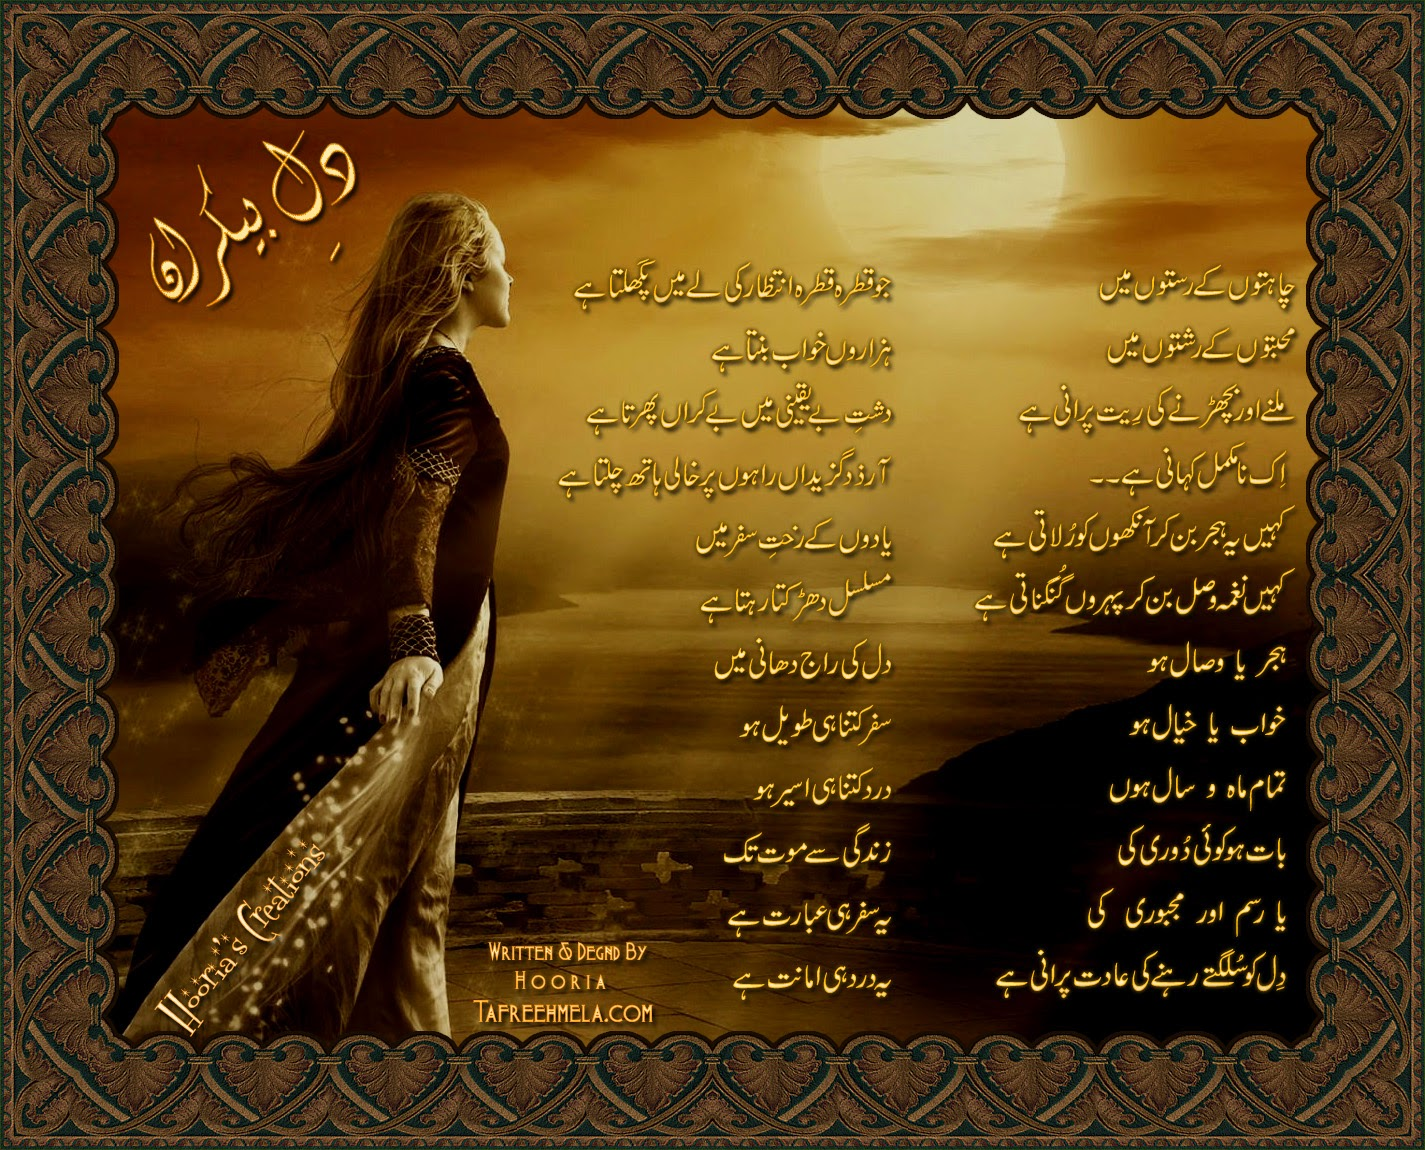 poetry wallpapers 2013 sad urdu poetry wallpapers urdu sad poetry 1425x1150